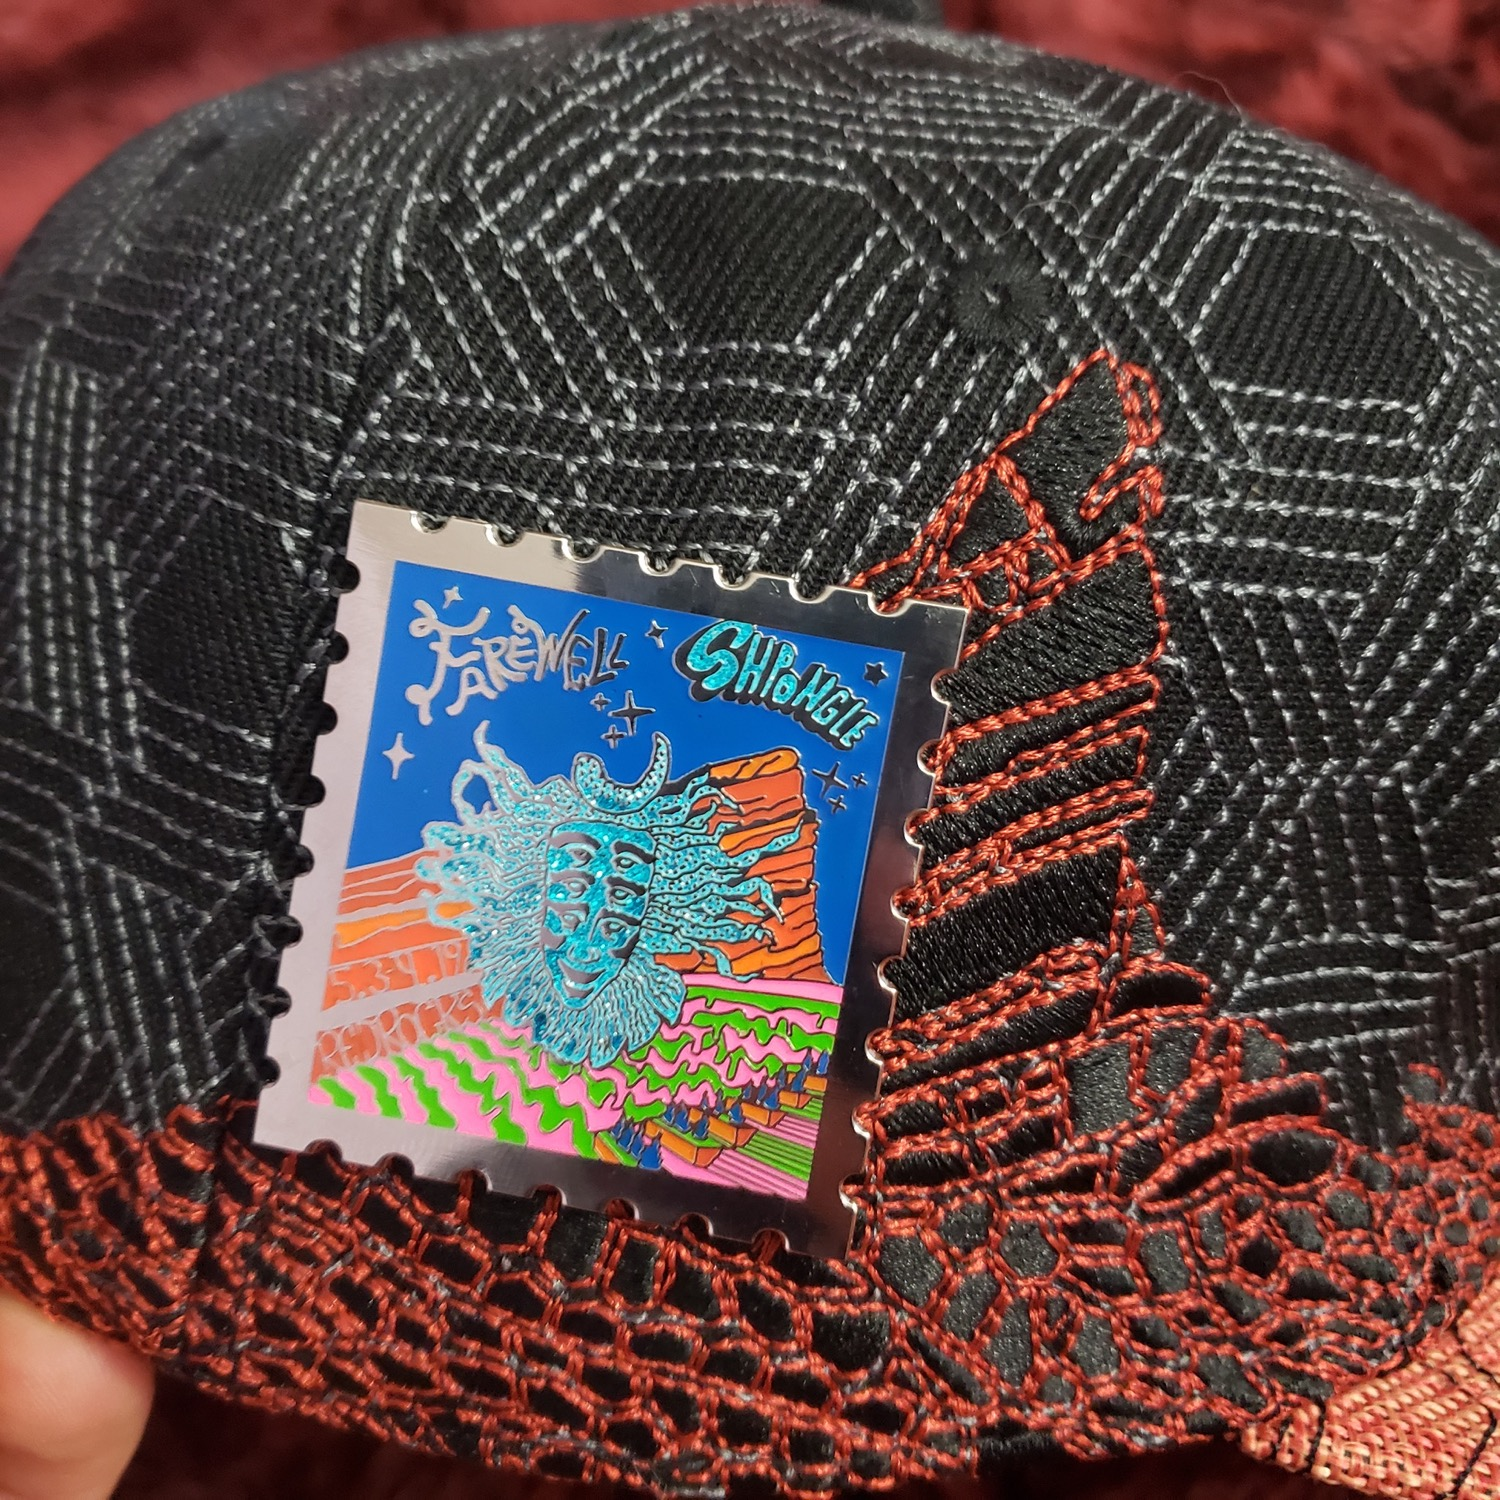 c8a2d211 Shpongle was dope af....oh you mean the hat. The hats colors are perfect,  the red rock stitching over the black geo patterns make it a fun hat!